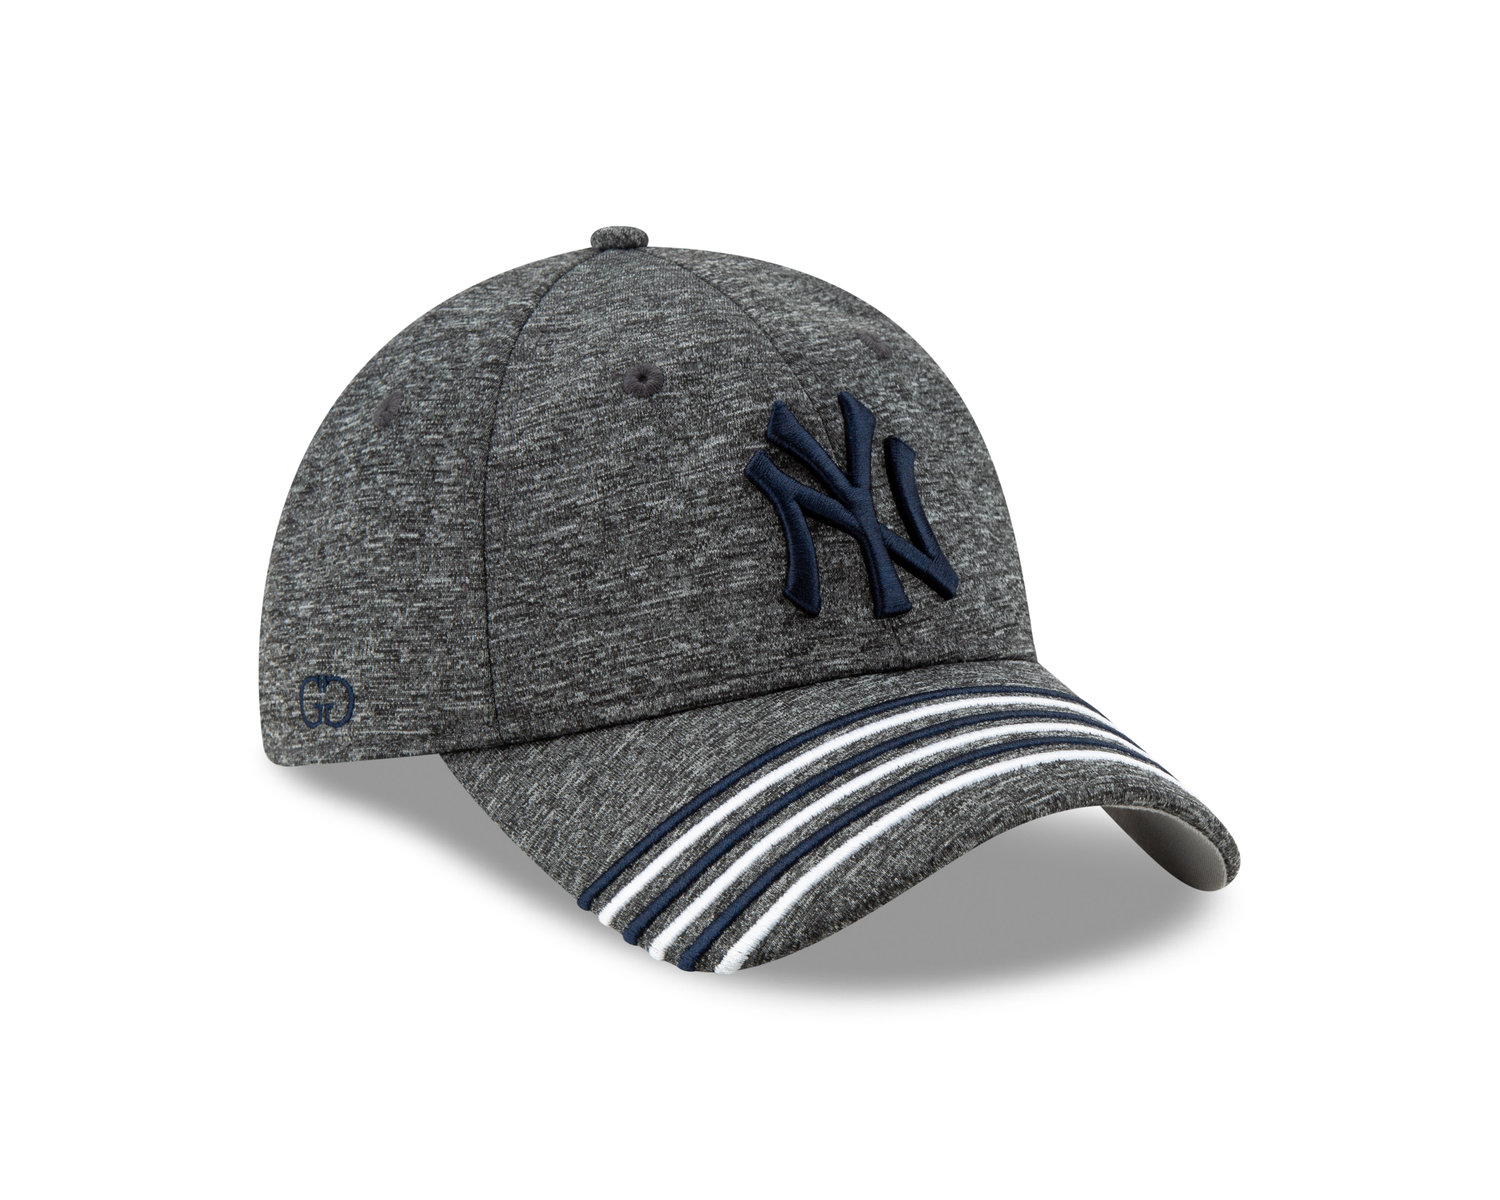 GG x New Era x Yankees — Grungy Gentleman 35863ae7314